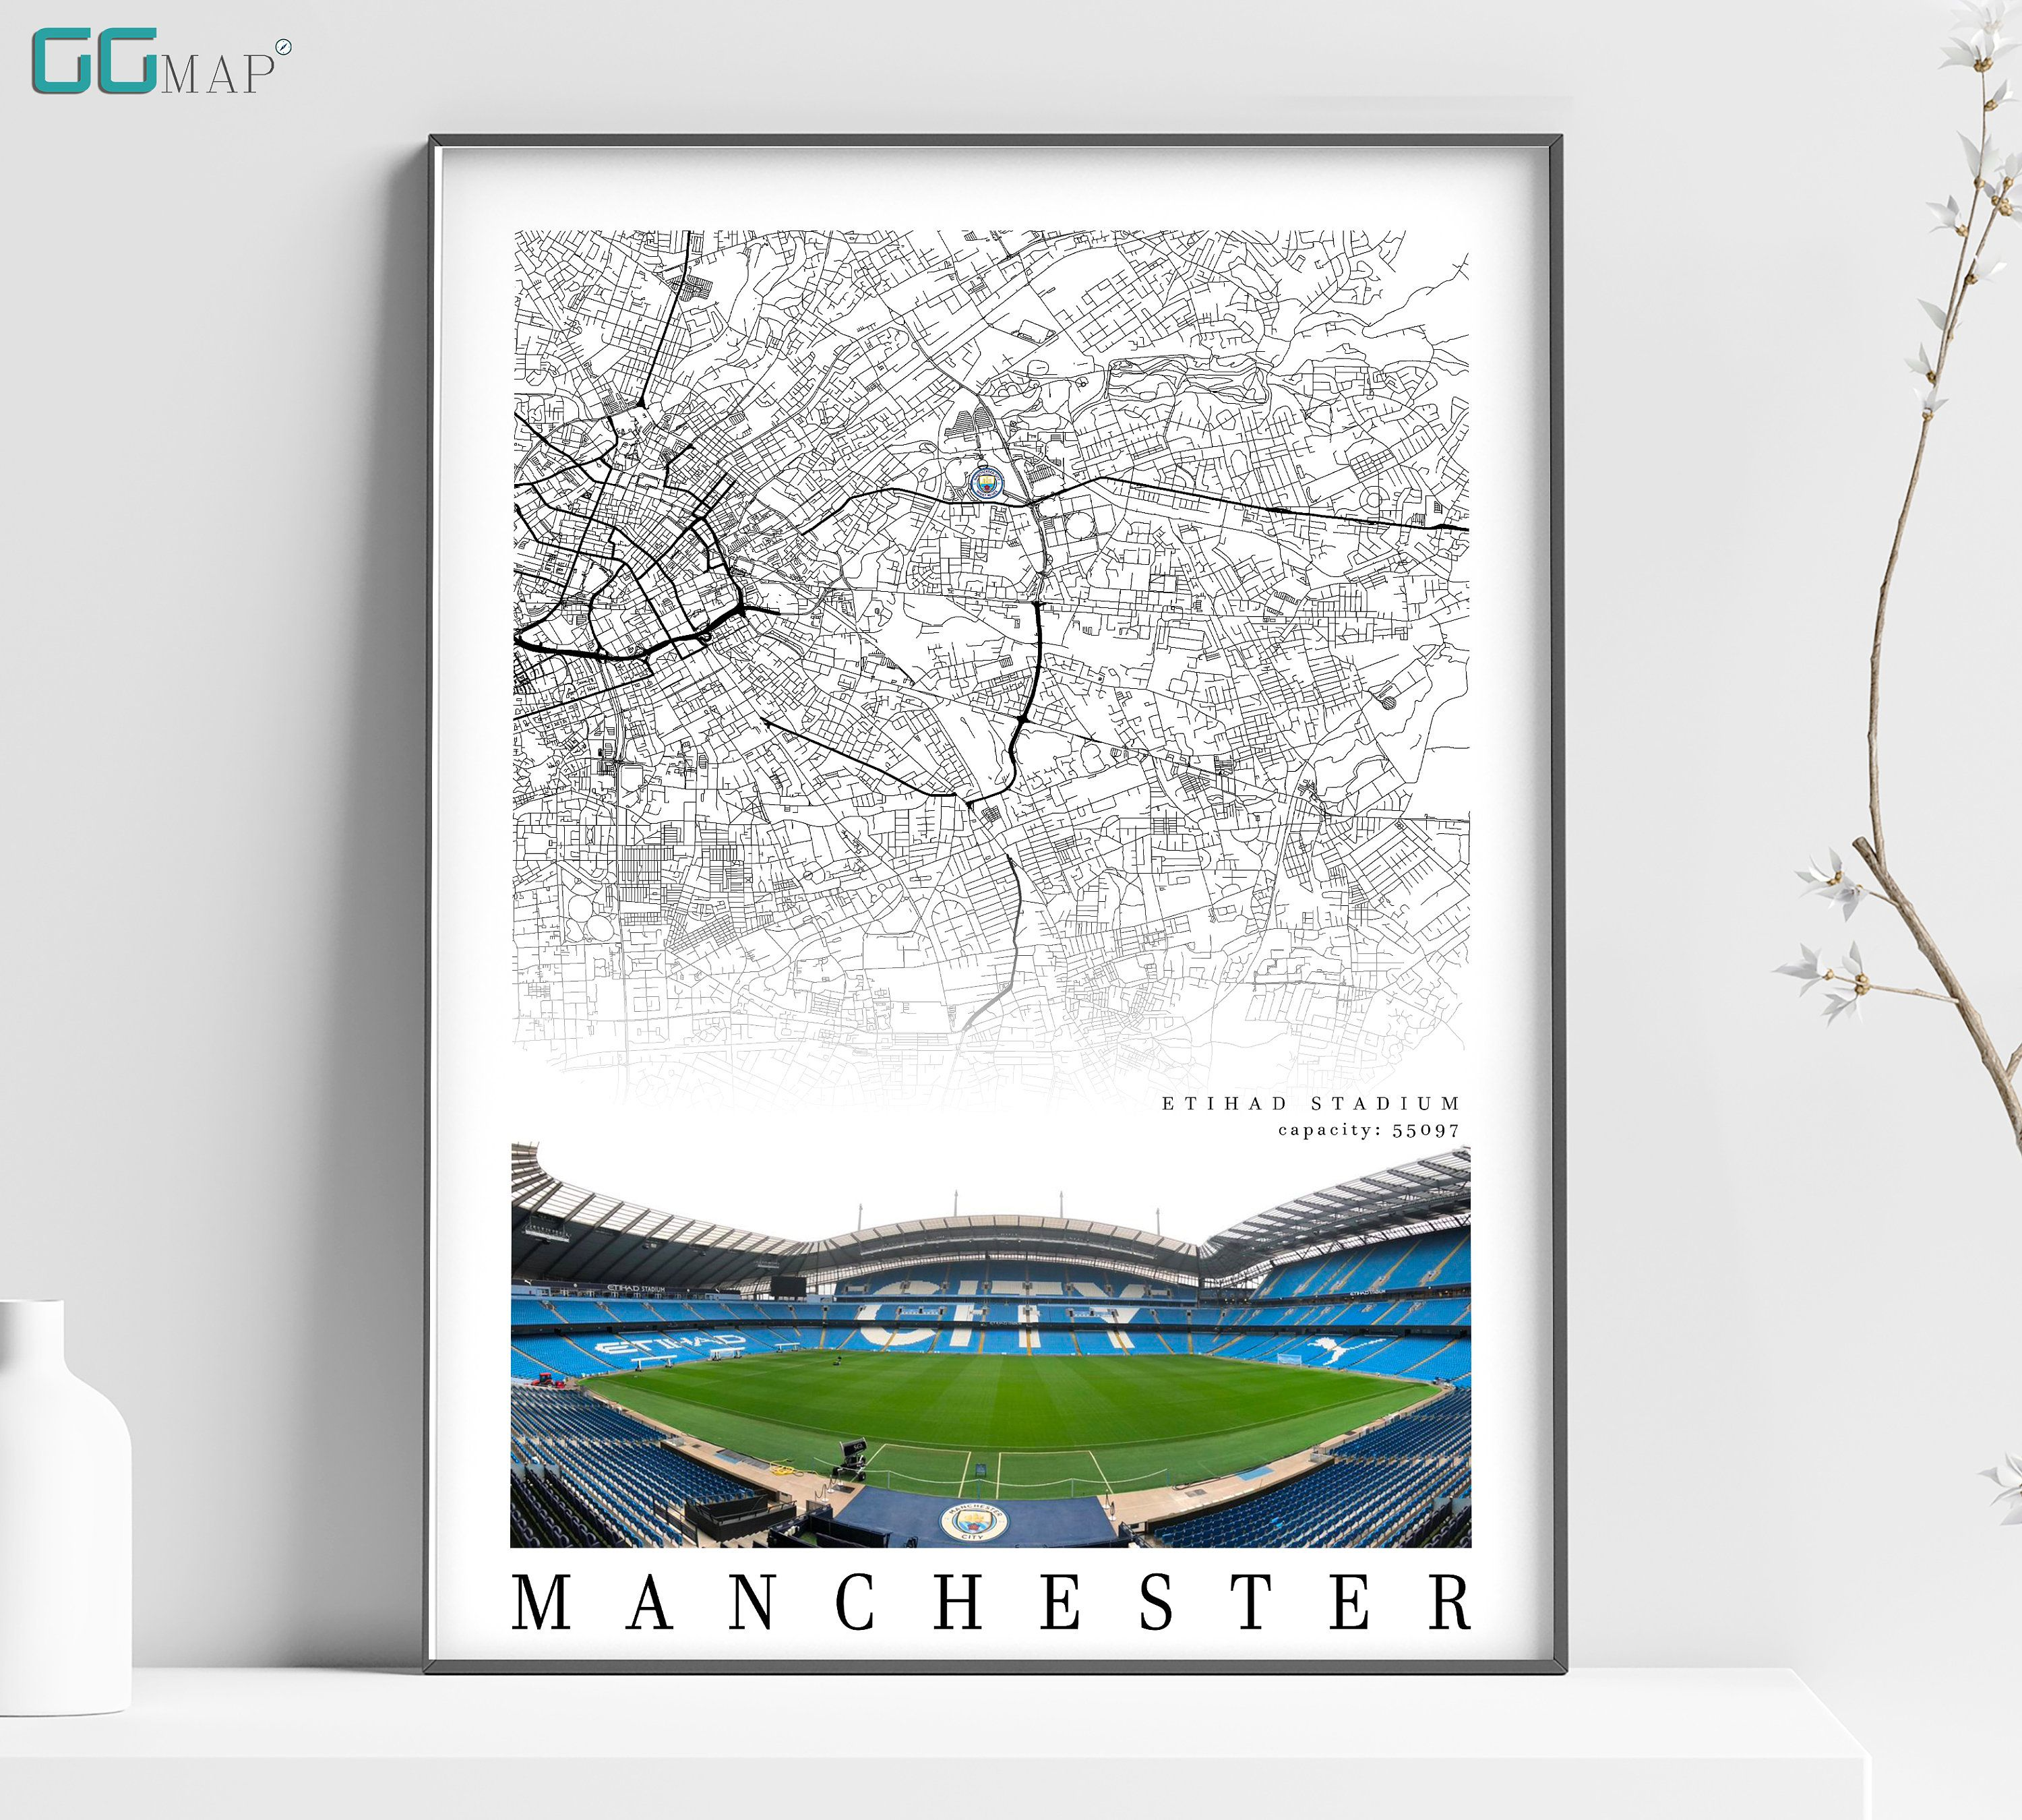 City Map Of Manchester Etihad Stadium Home Decor City Of Etsy Beautiful Wall Art Manchester City Gifts City Gifts